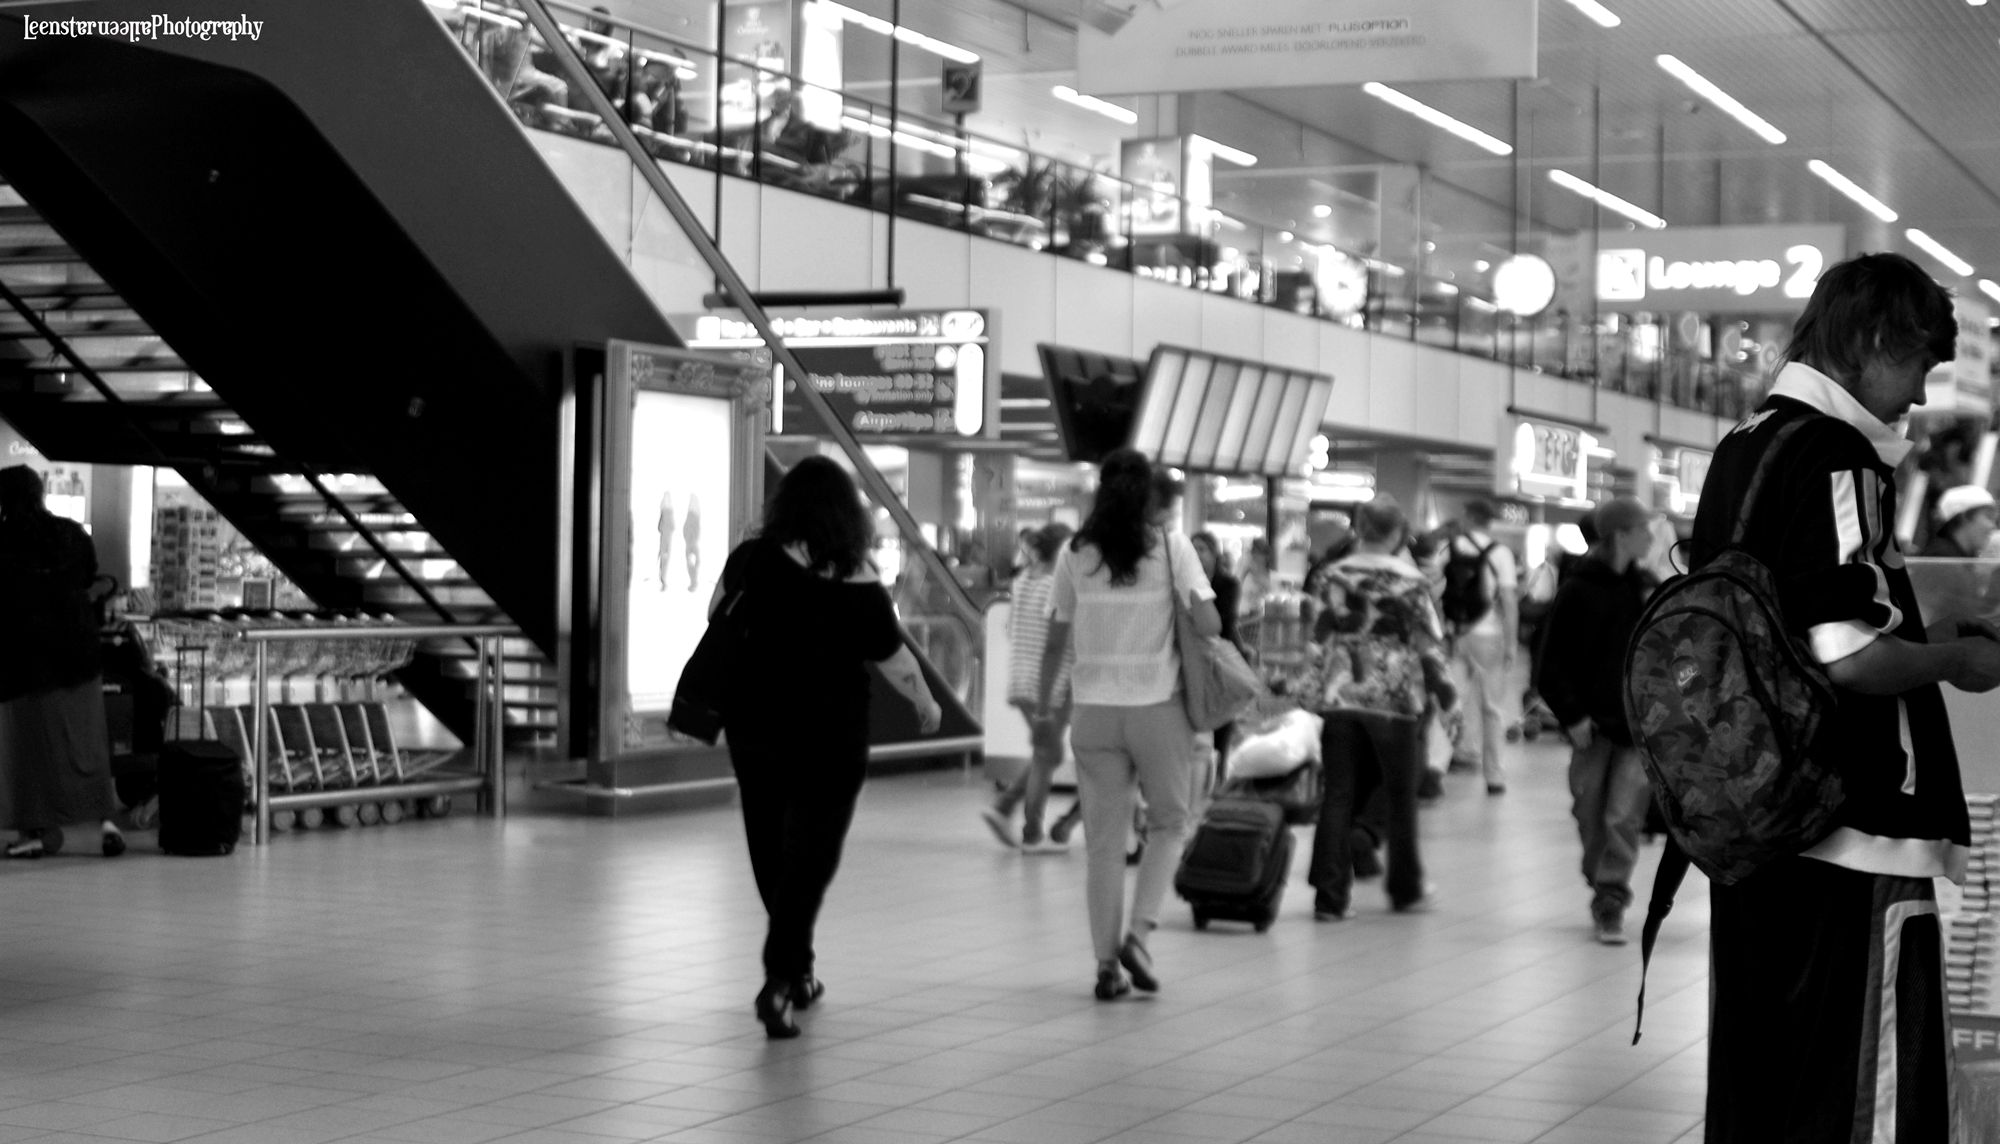 Schiphol Amsterdam's Airport